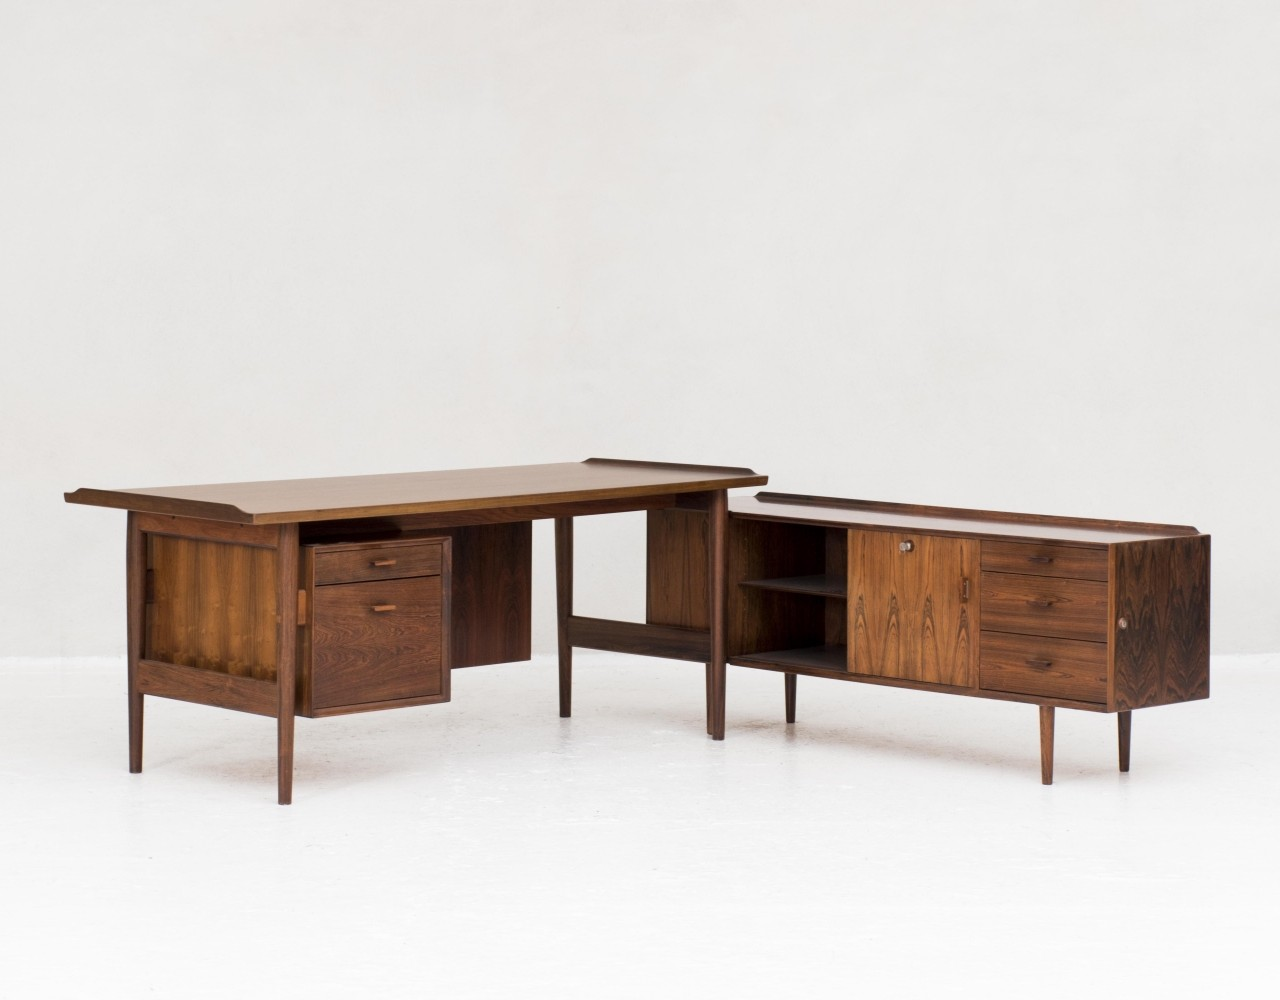 Writing desk with matching side cabinet by Arne Vodder, Denmark 1960